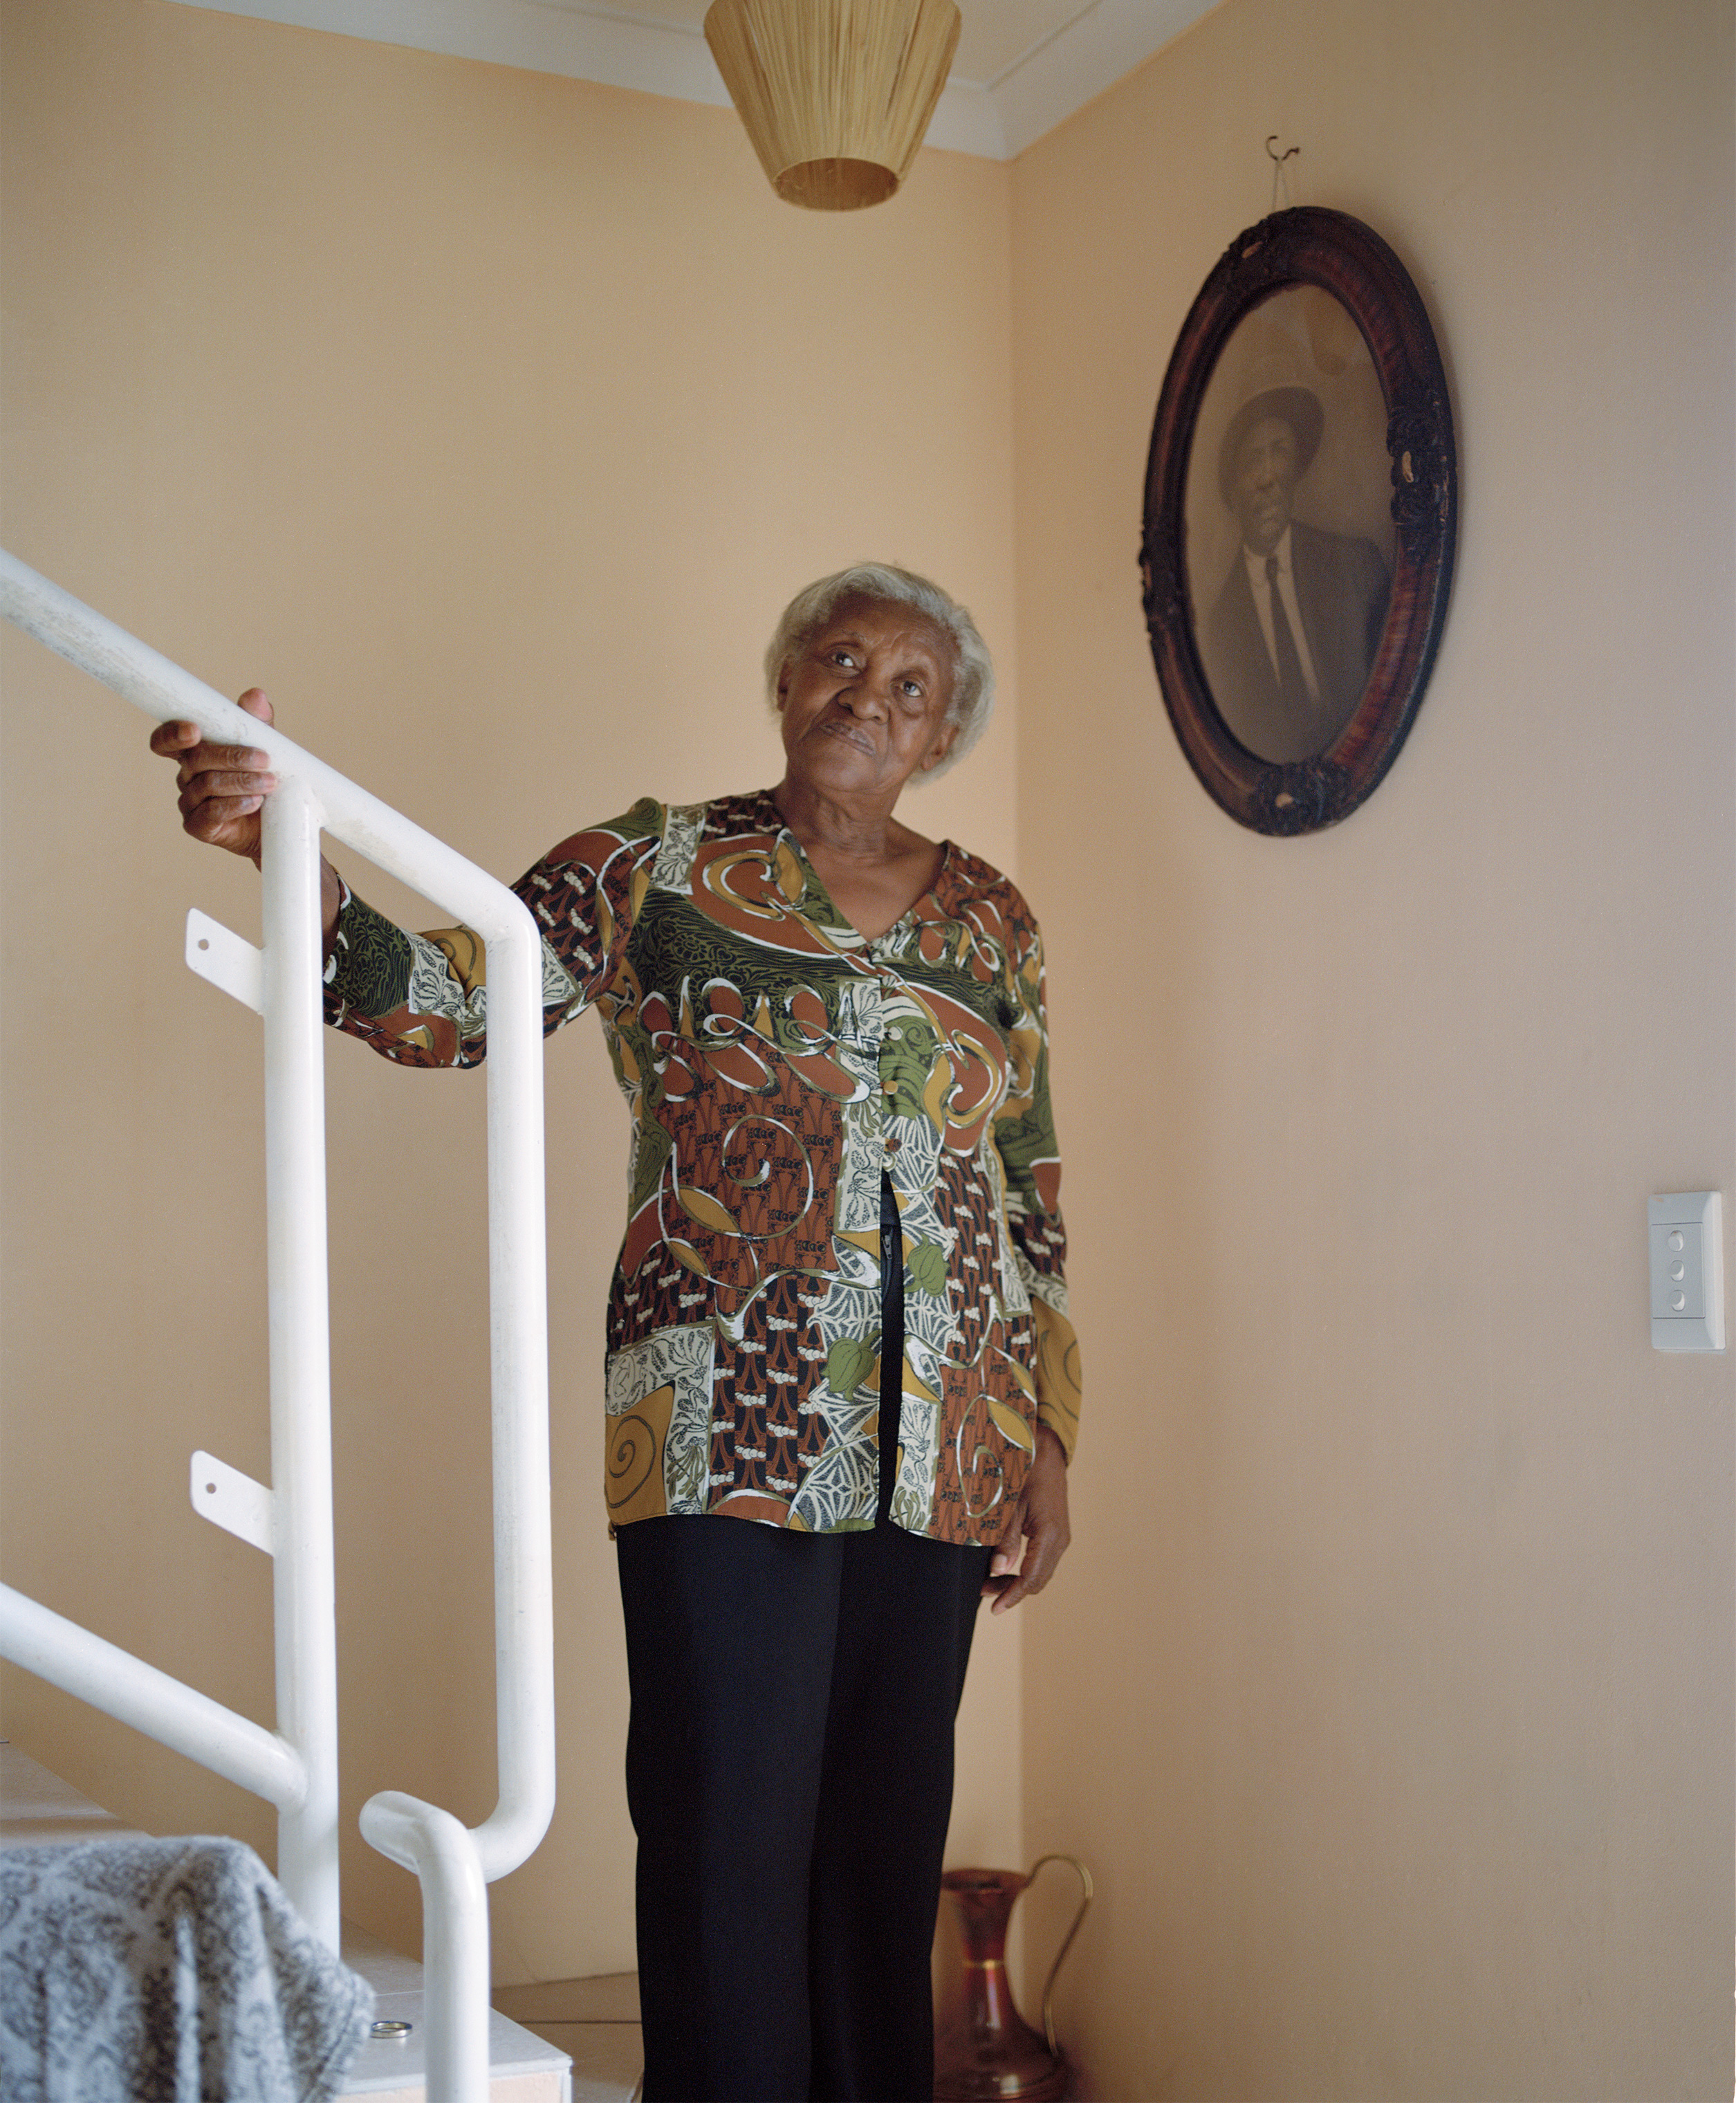 Susan Lewis, 76, is a resident of Cape Town's District Six neighborhood. Under the apartheid regime, the area was deemed  whites only,  and the community's 60,000 residents were forcibly removed. Today, only 139 homes, including Lewis's, have been rebuilt for the community's former residents.